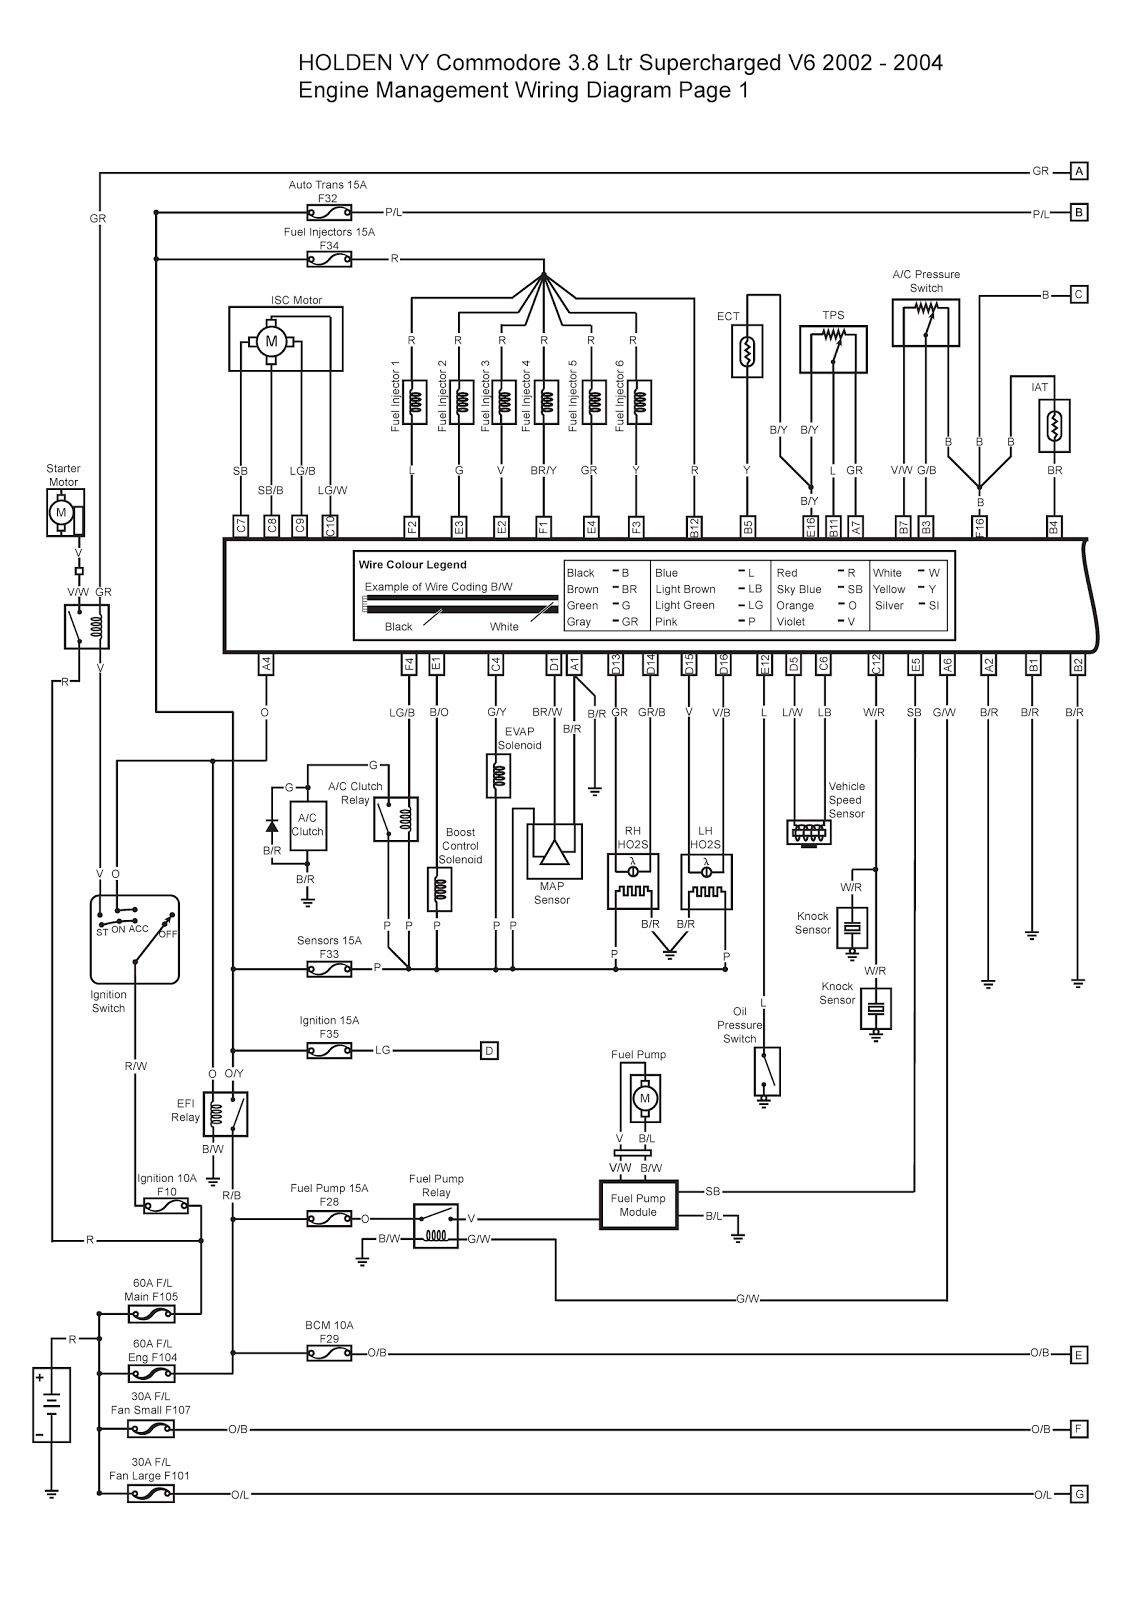 0001 vz wiring diagram efcaviation com vz bcm wiring diagram at nearapp.co